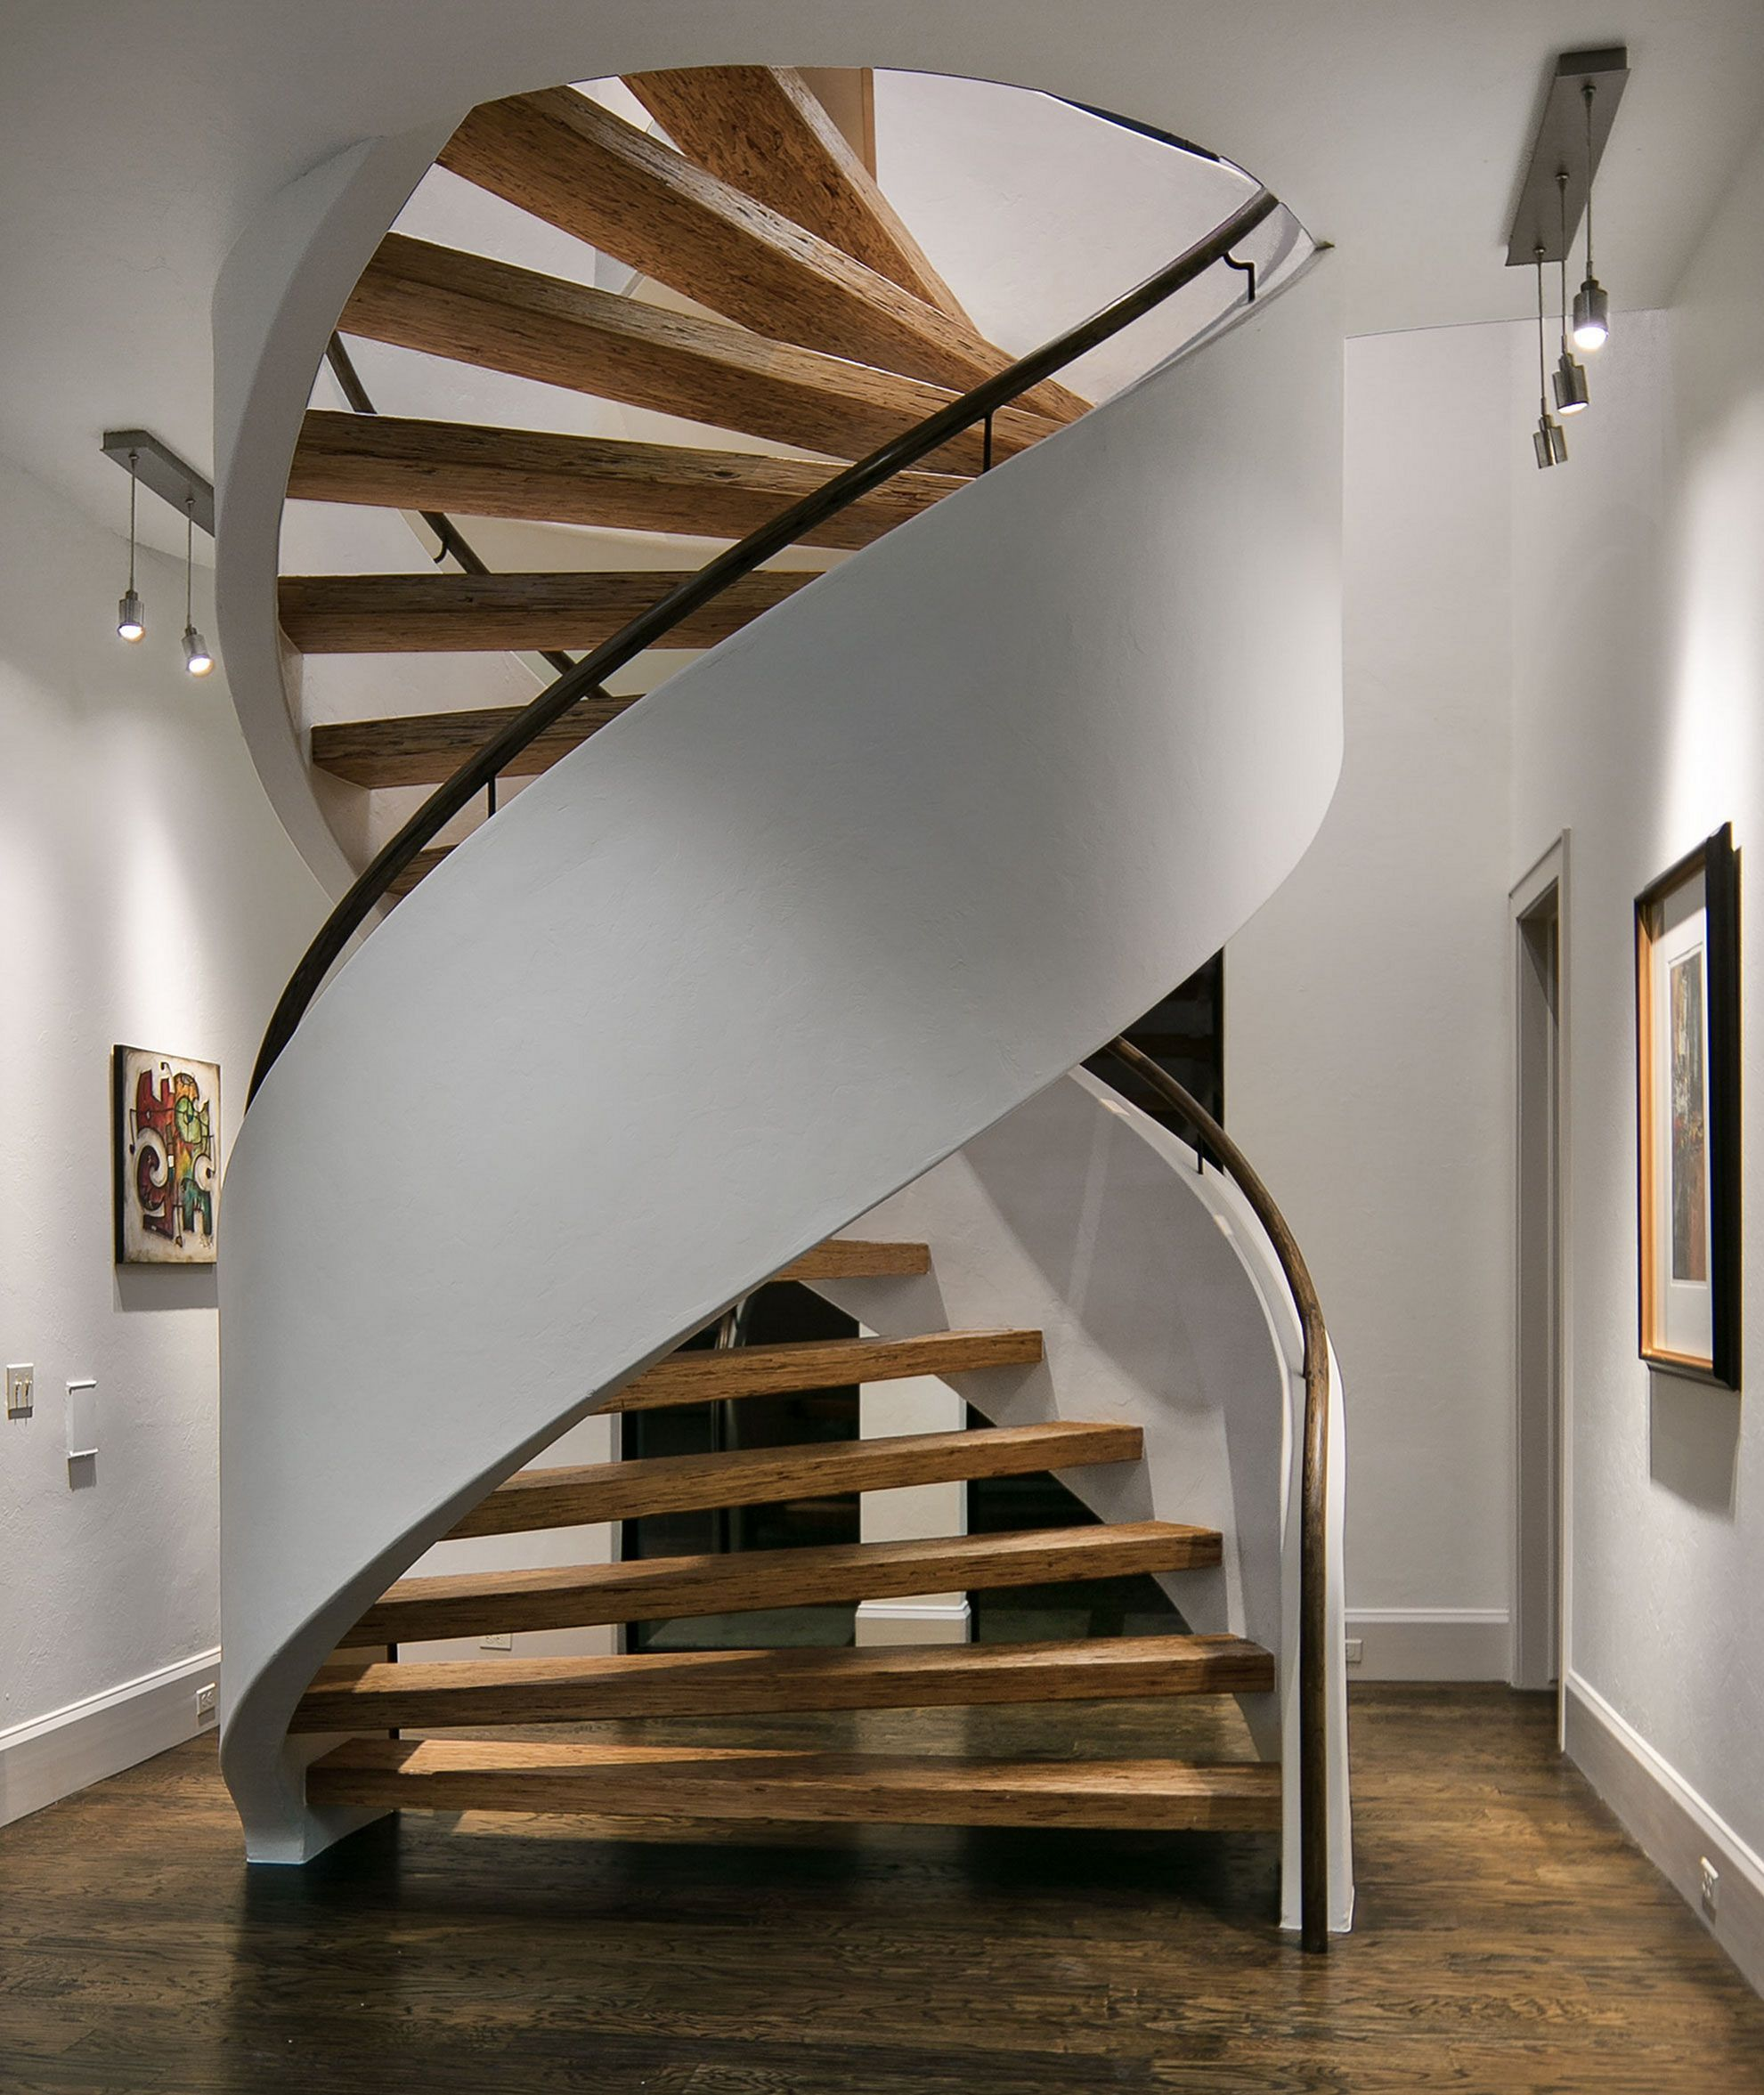 Stair Design Budget And Important Things To Consider: 12 Inspirational Home Stairs Design For Various Amazing